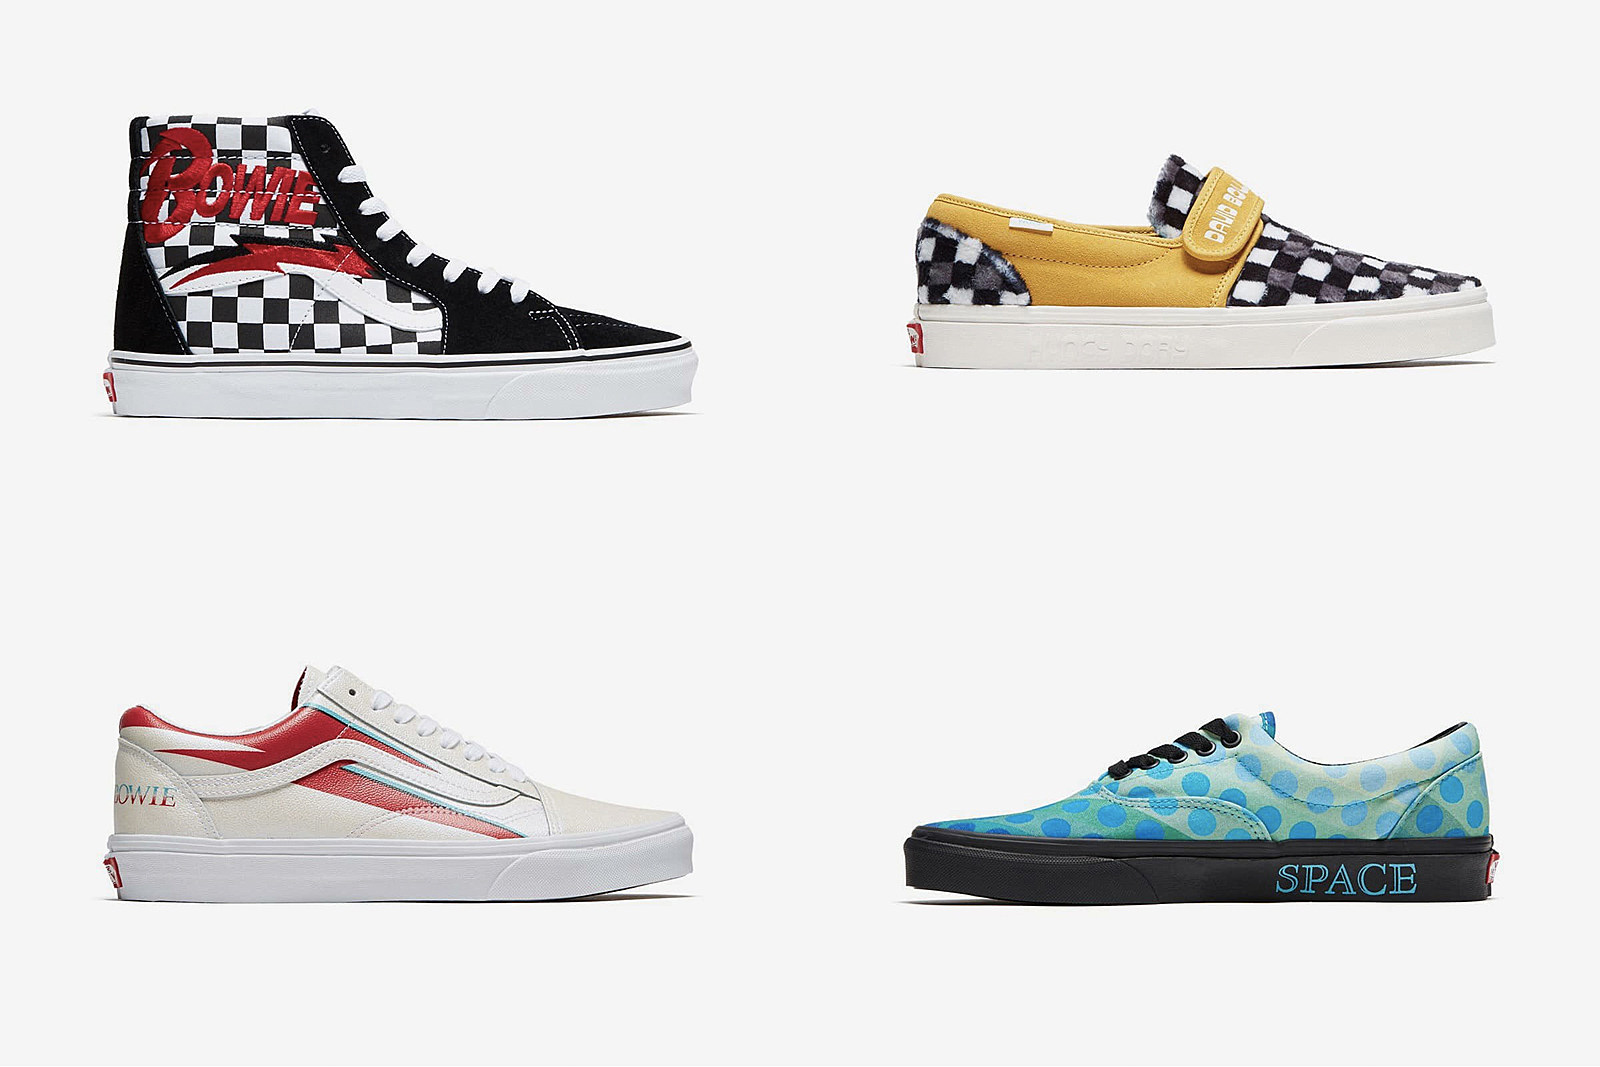 new vans chaussures coming out 2019